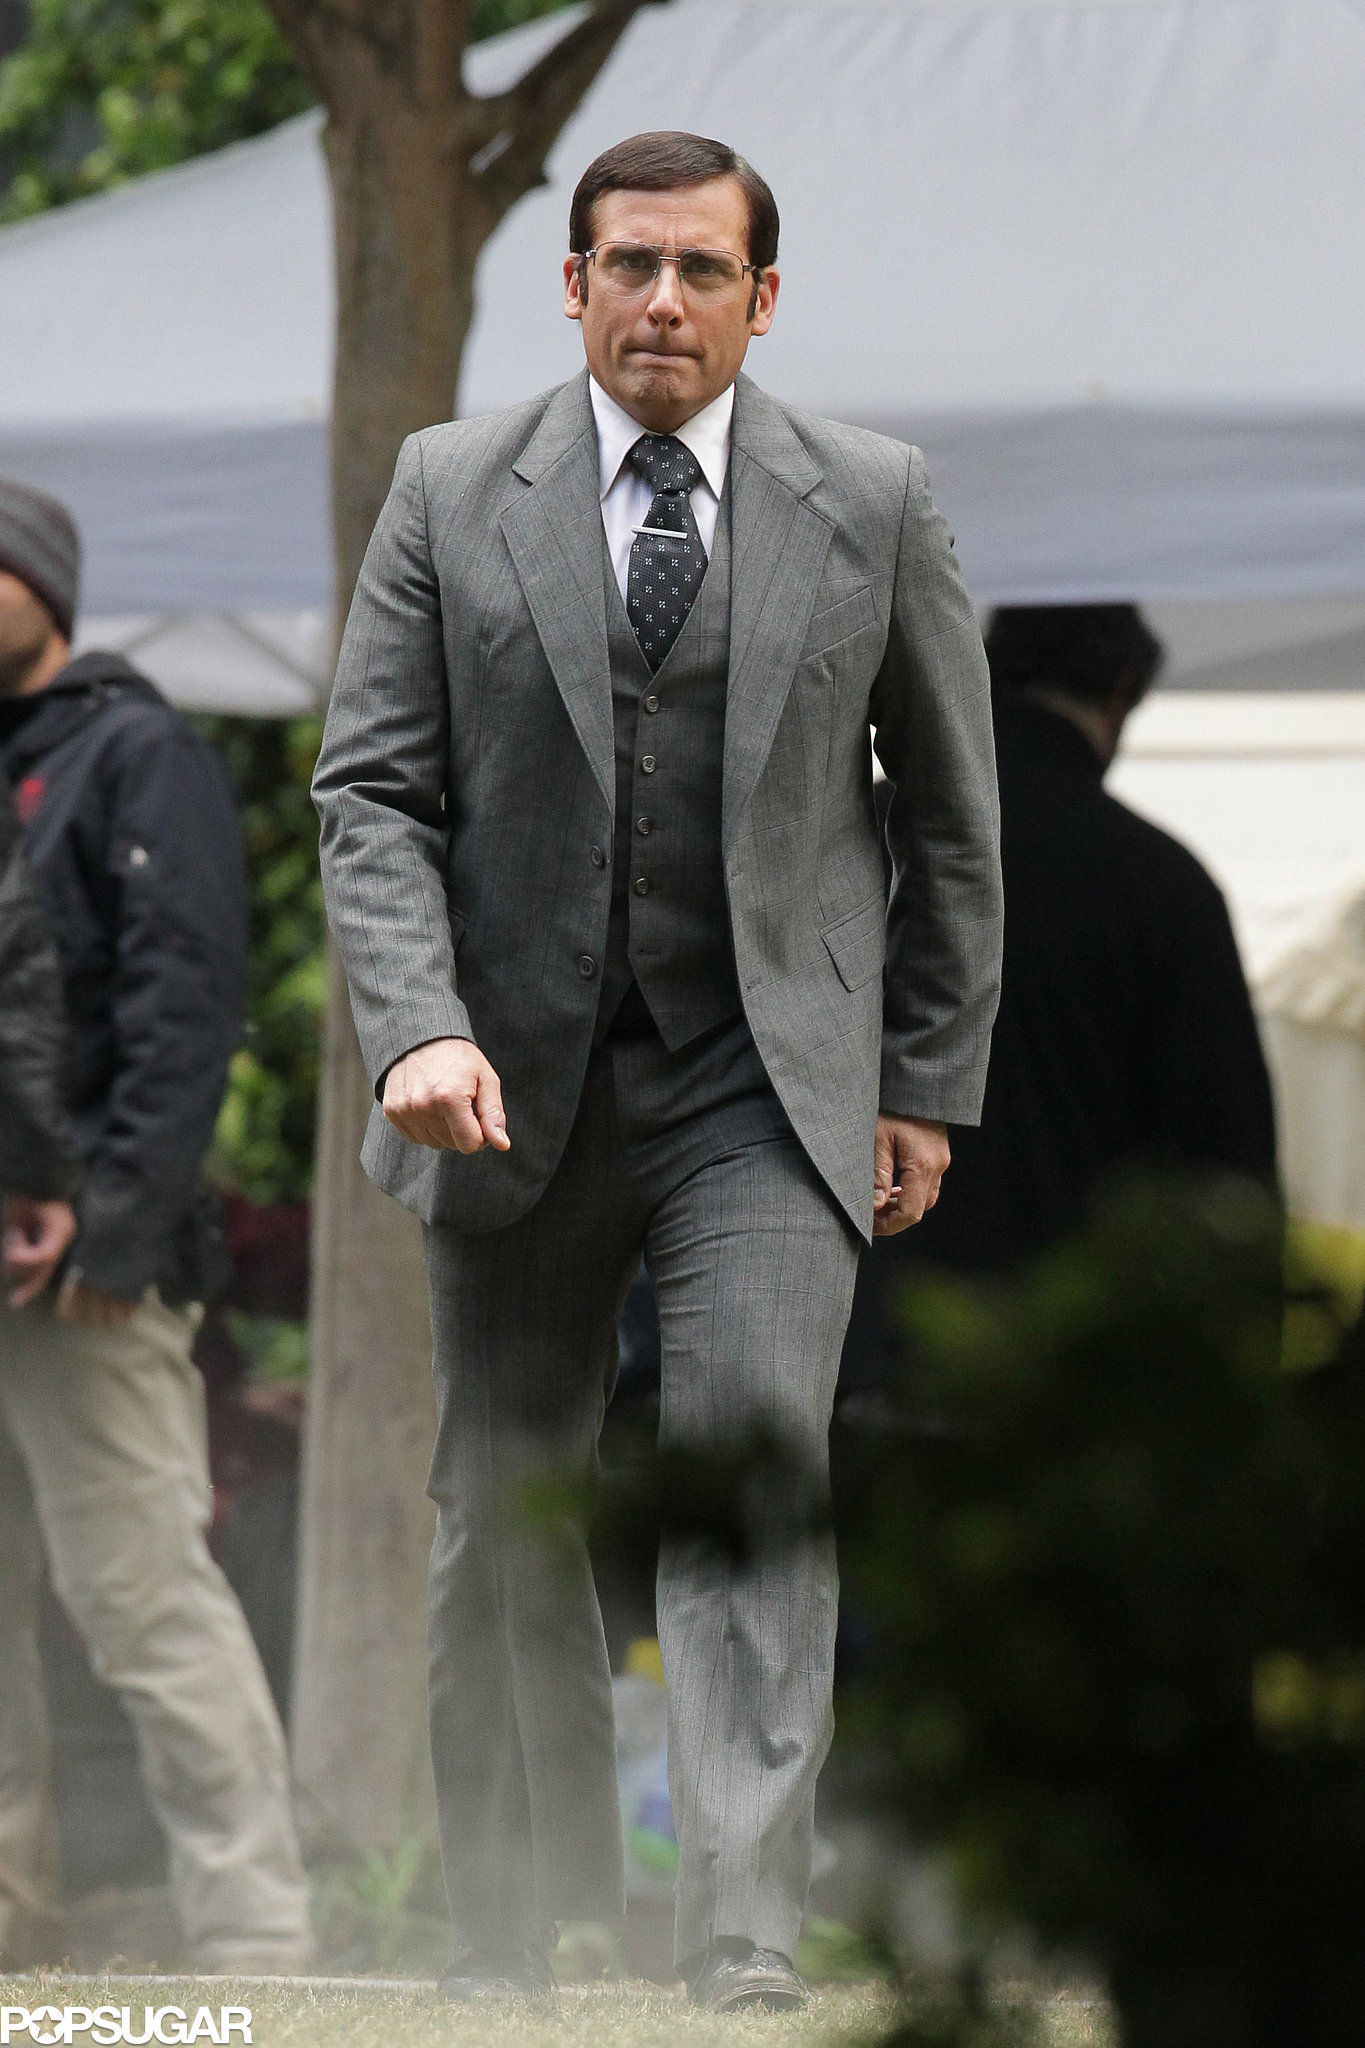 Steve Carell walked around on set in costume.